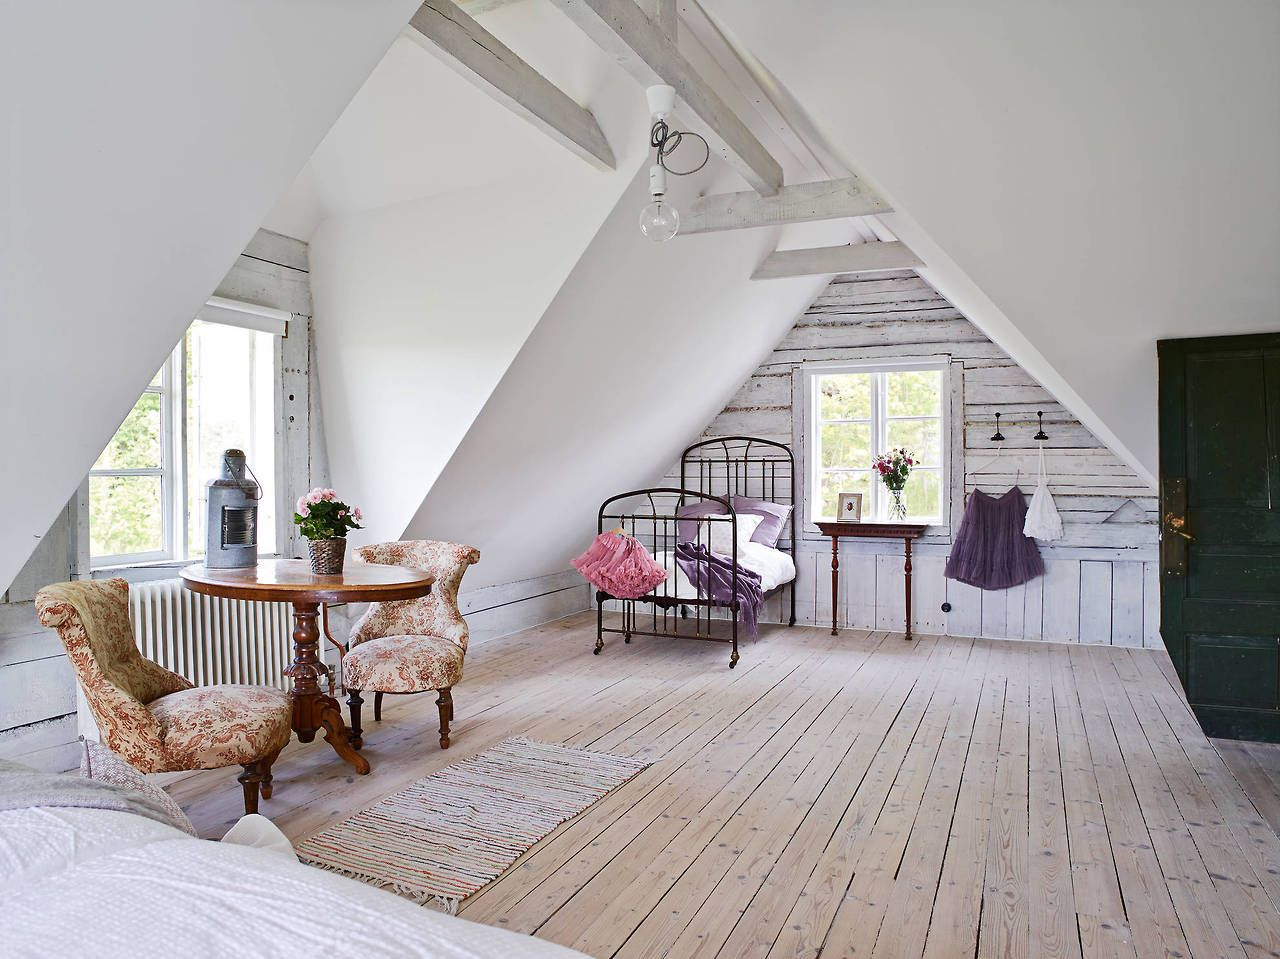 Attic Bedroom Attic Bedroom Oh This Is More Like An Attic Apartment So